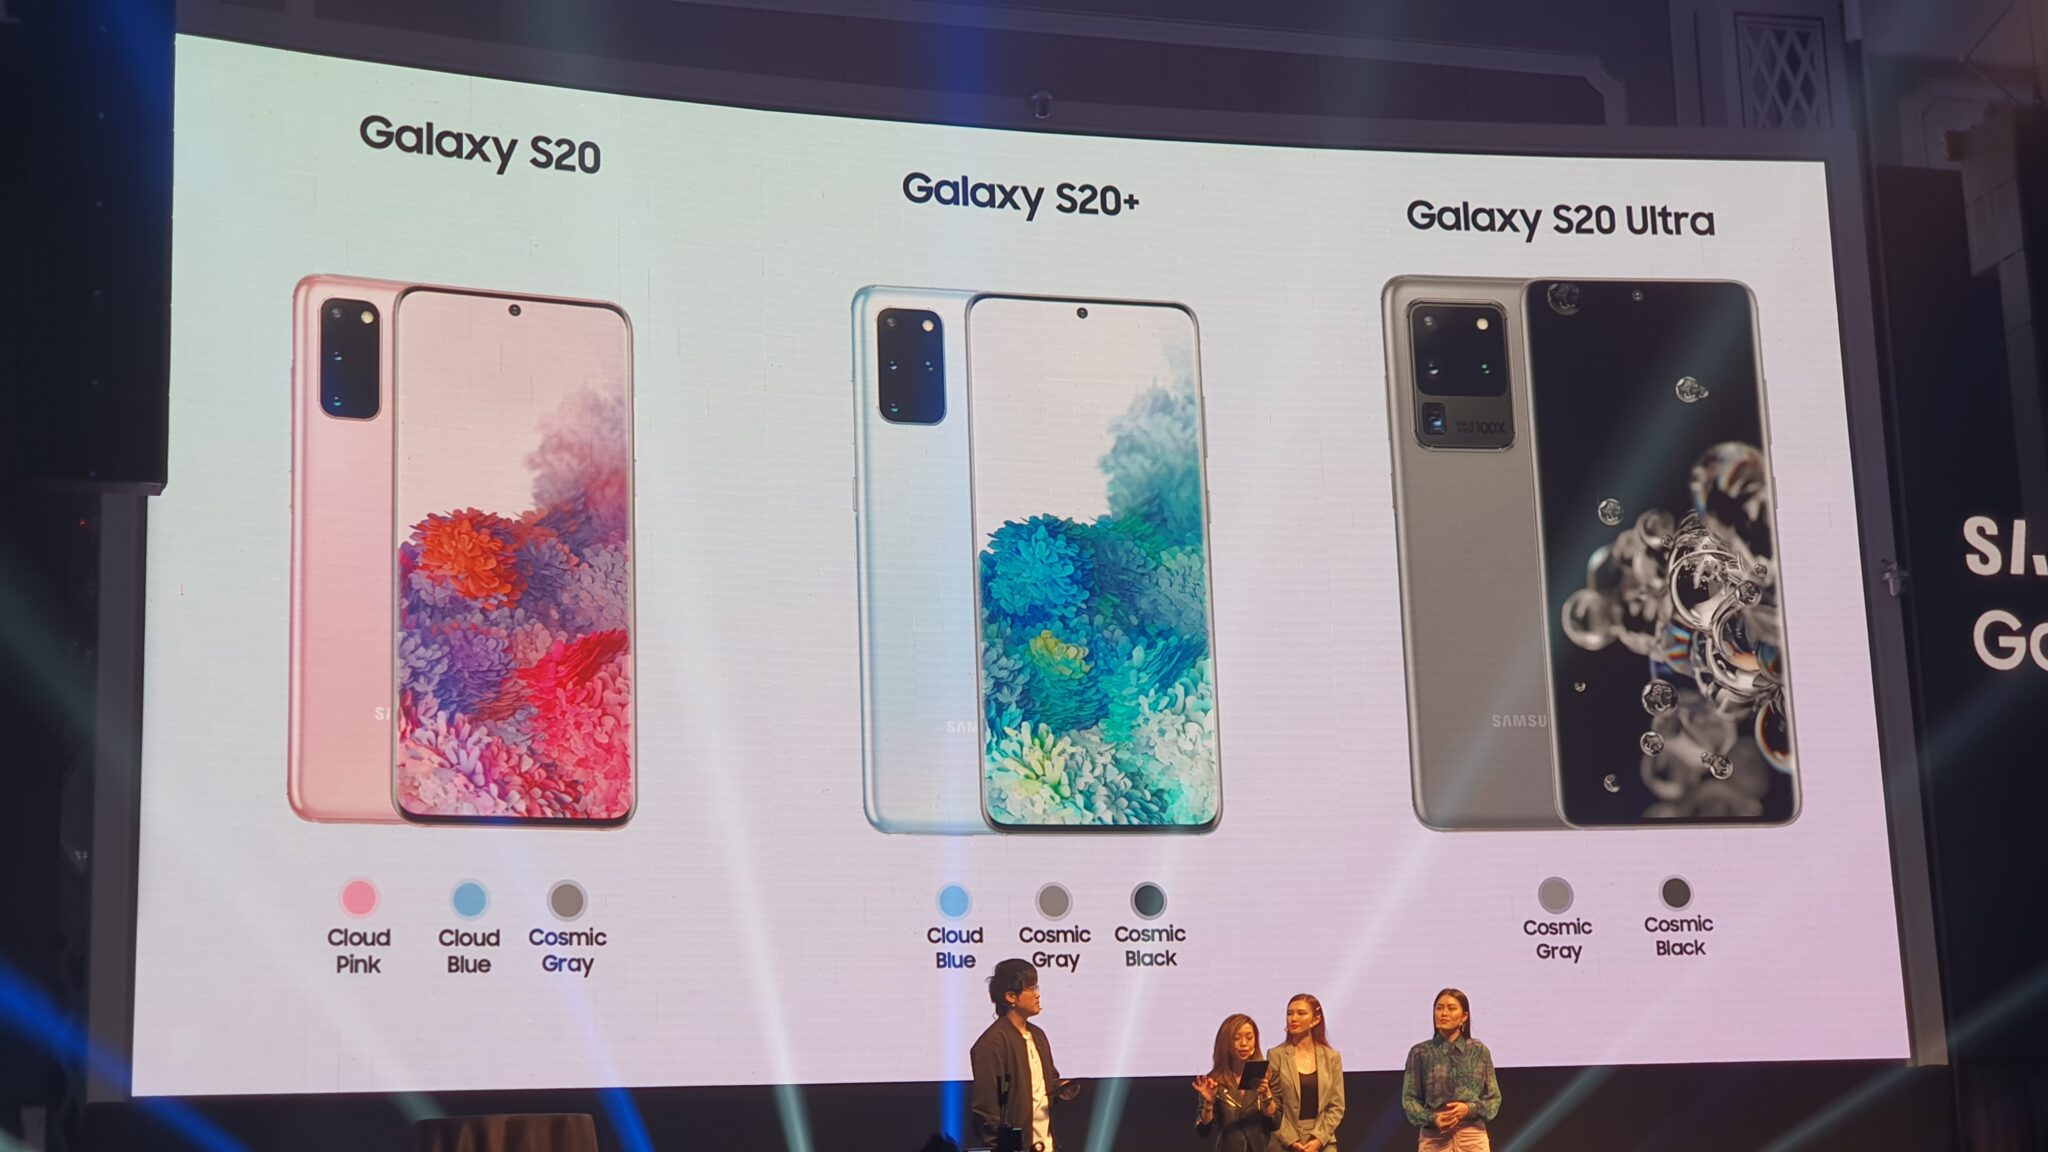 Galaxy S20 colour variants